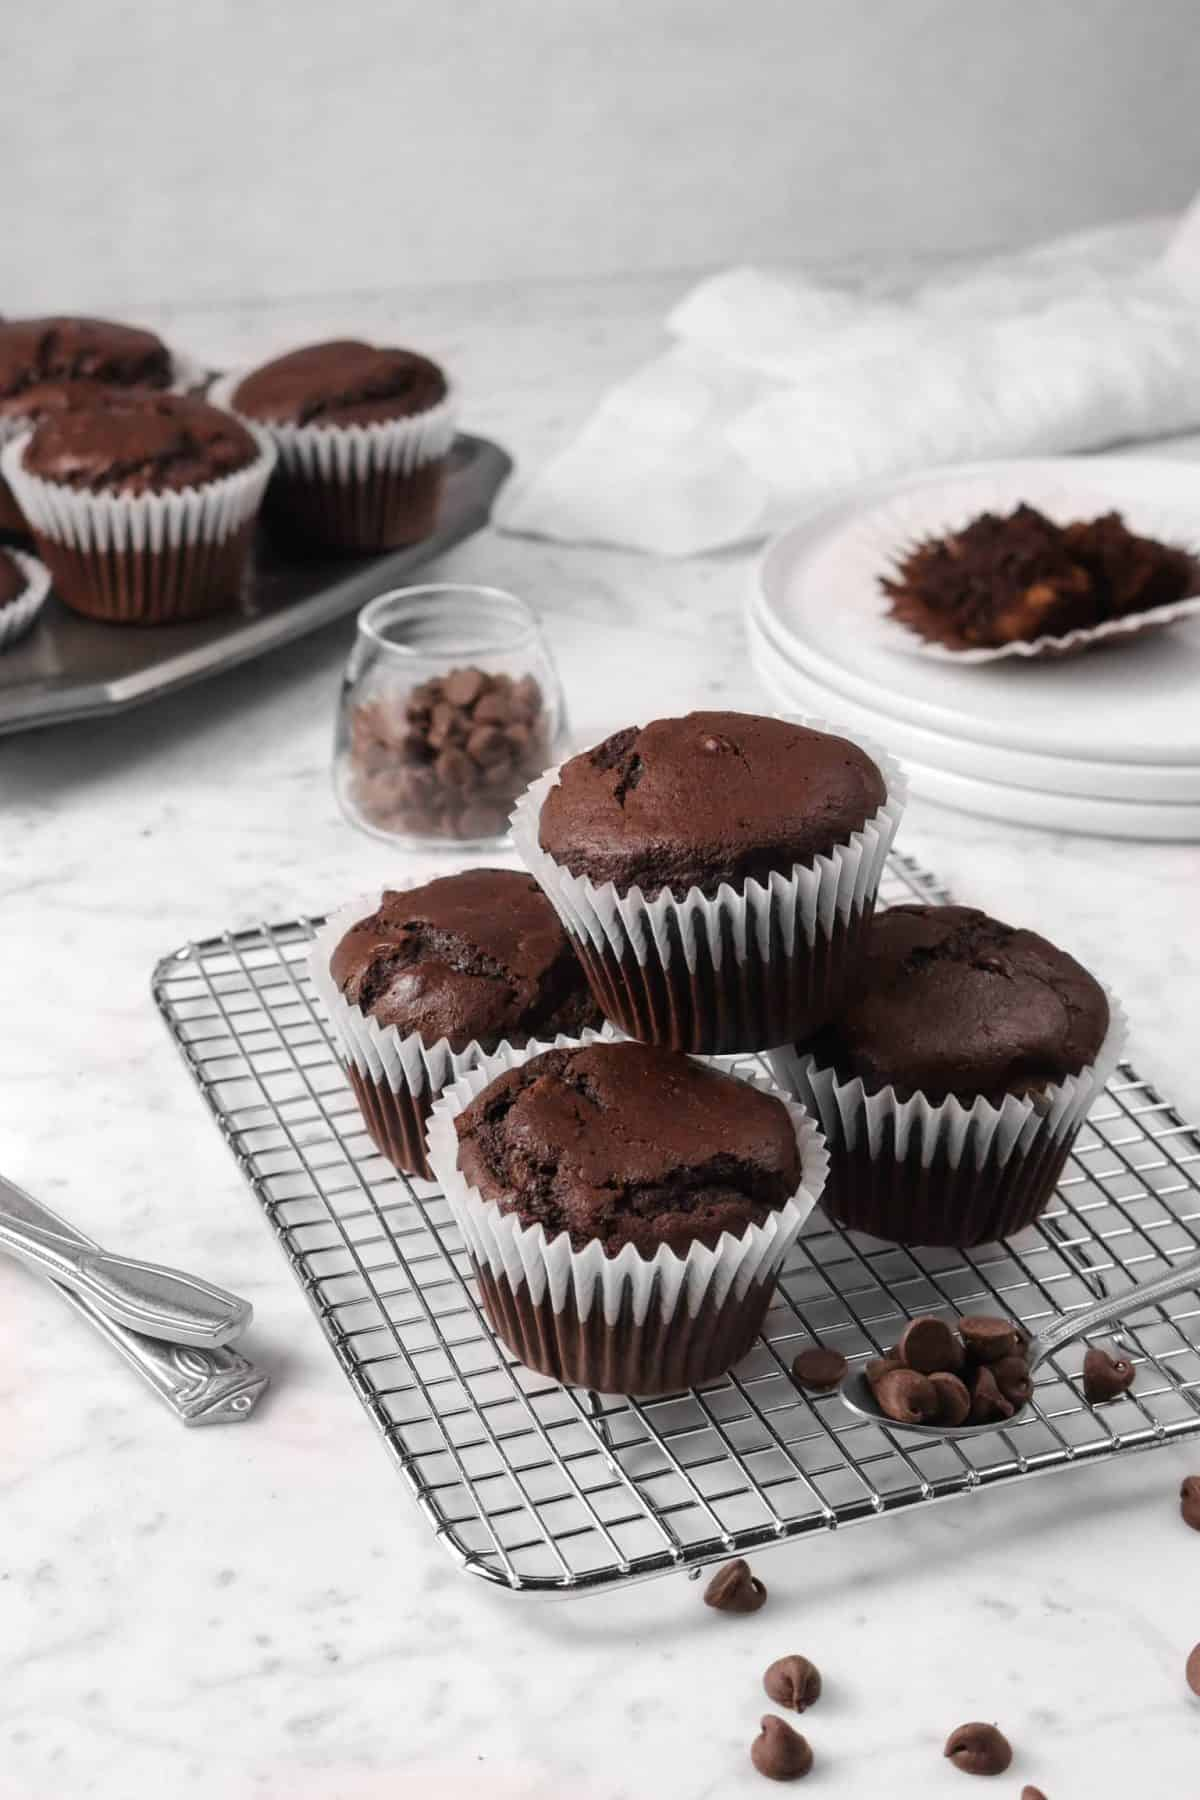 chocolate muffins on a cooling rack with chocolate chips and white plates and a napkin